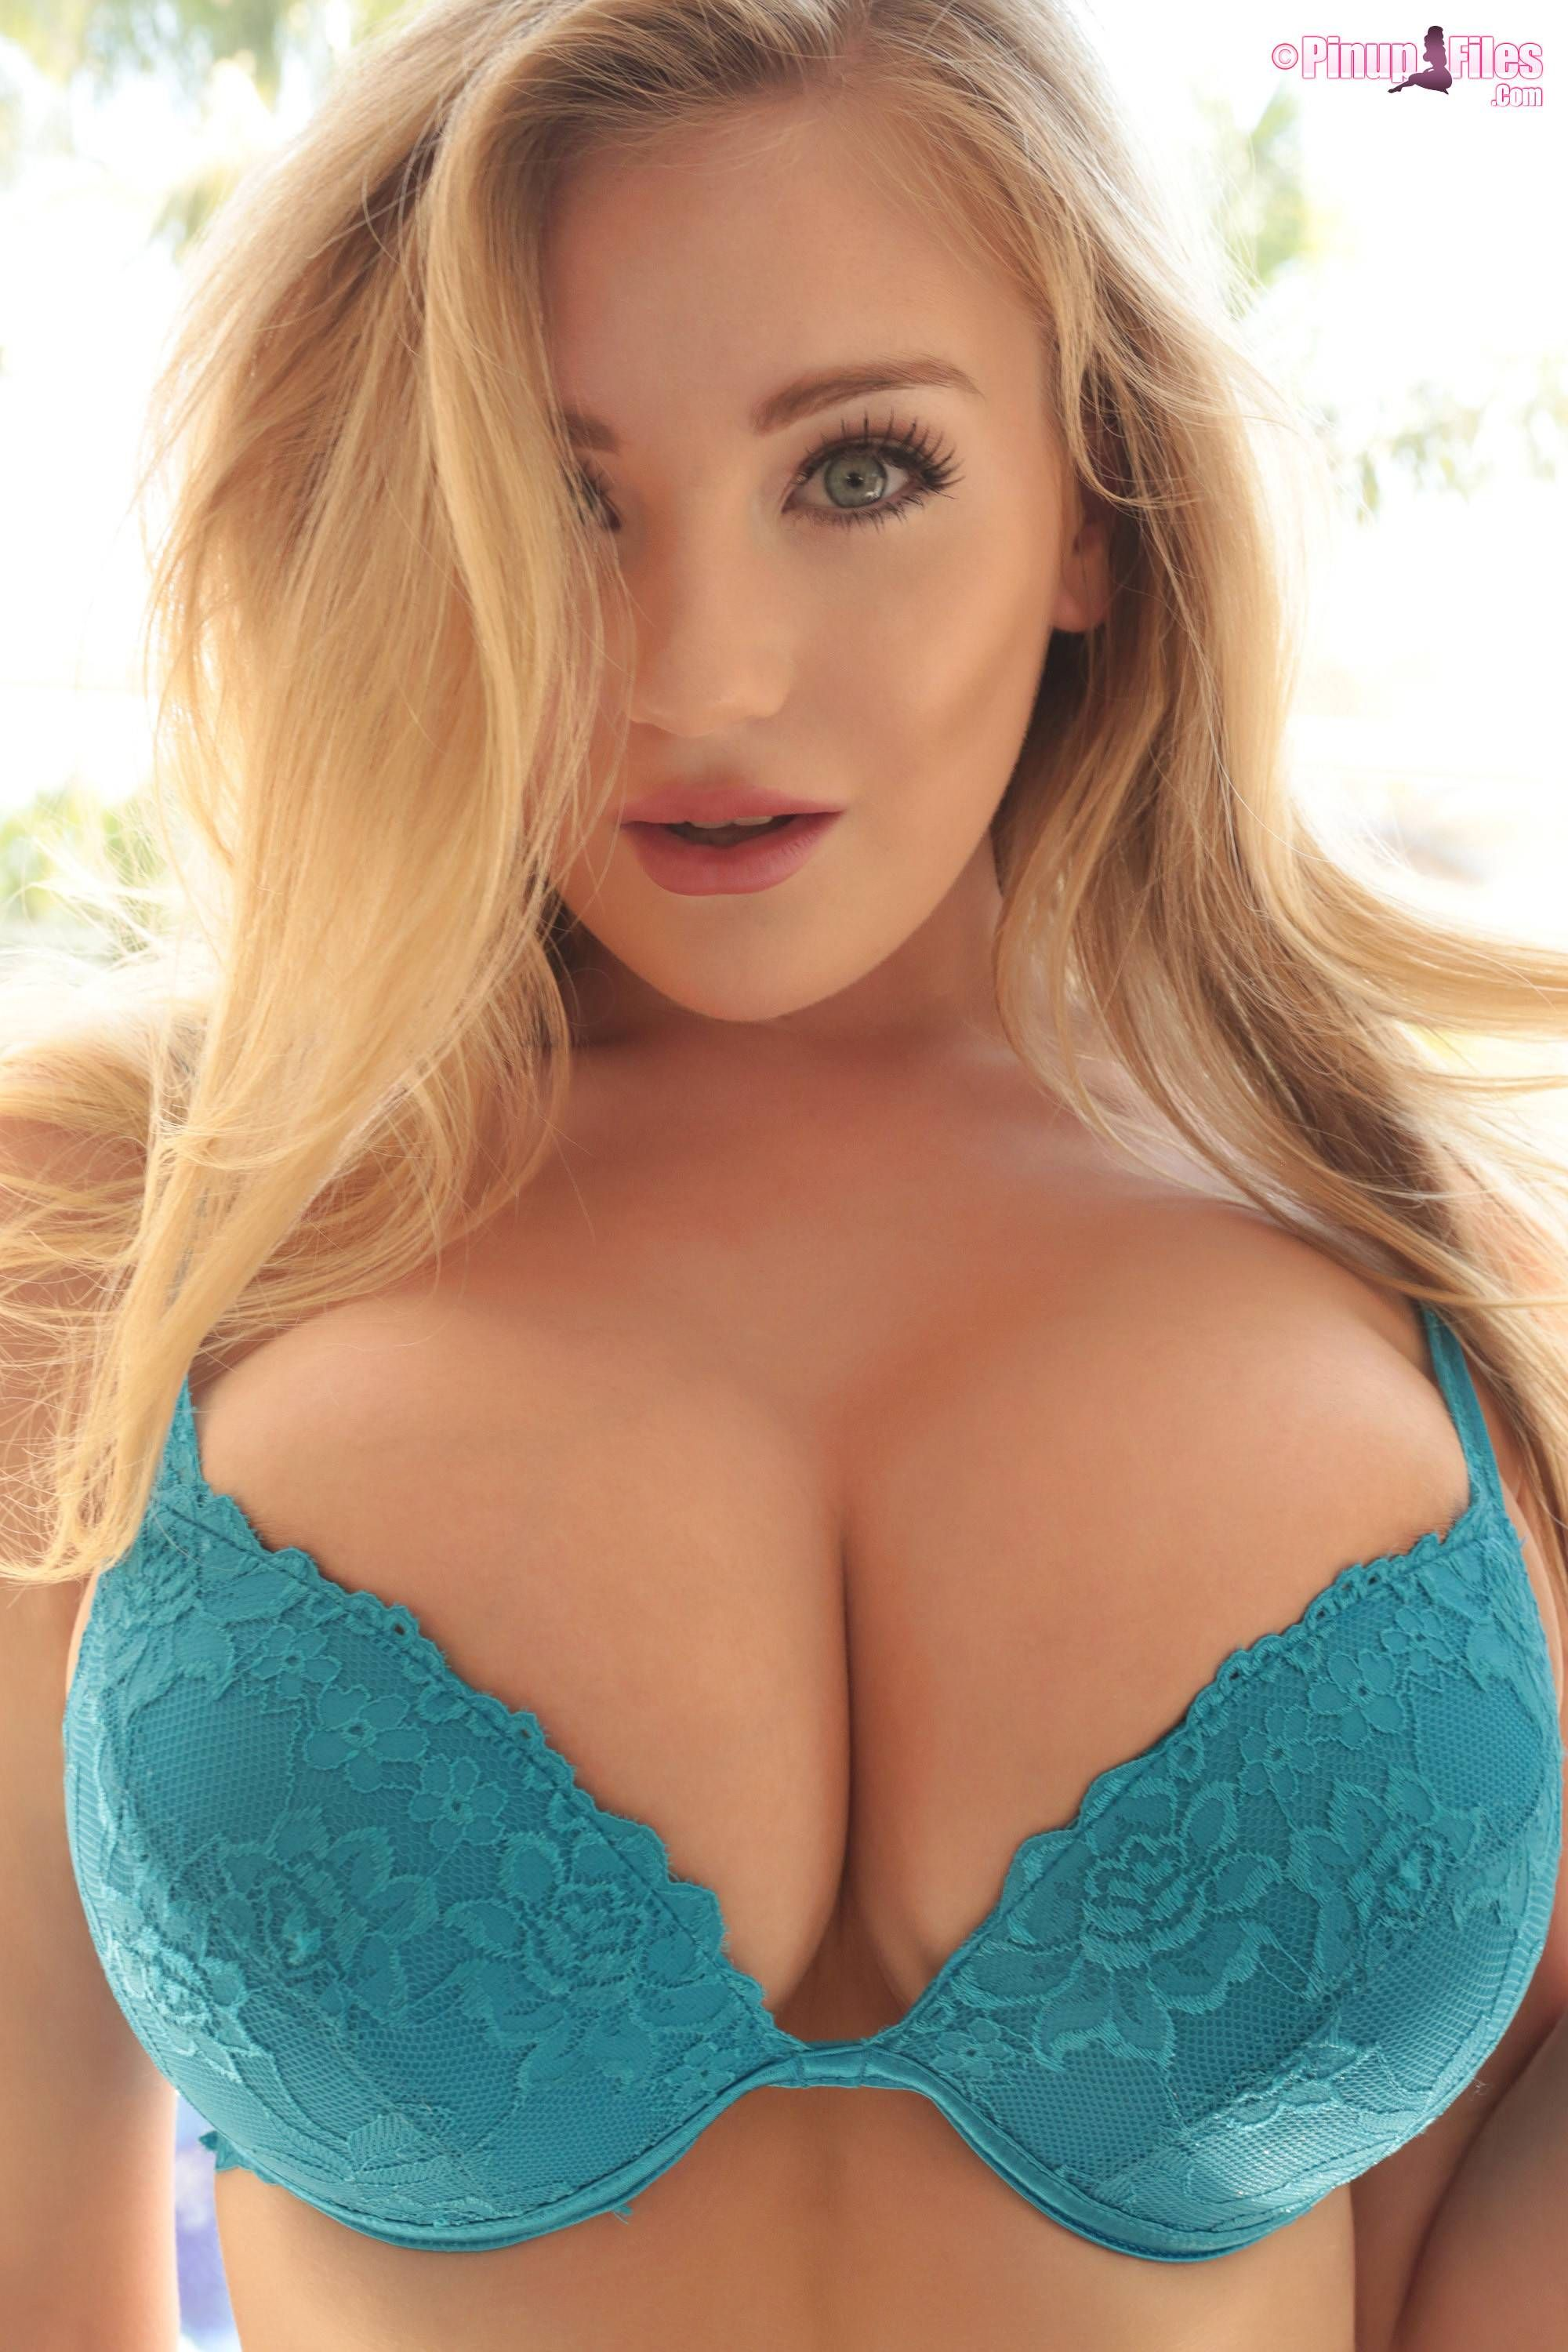 Busty british blonde model